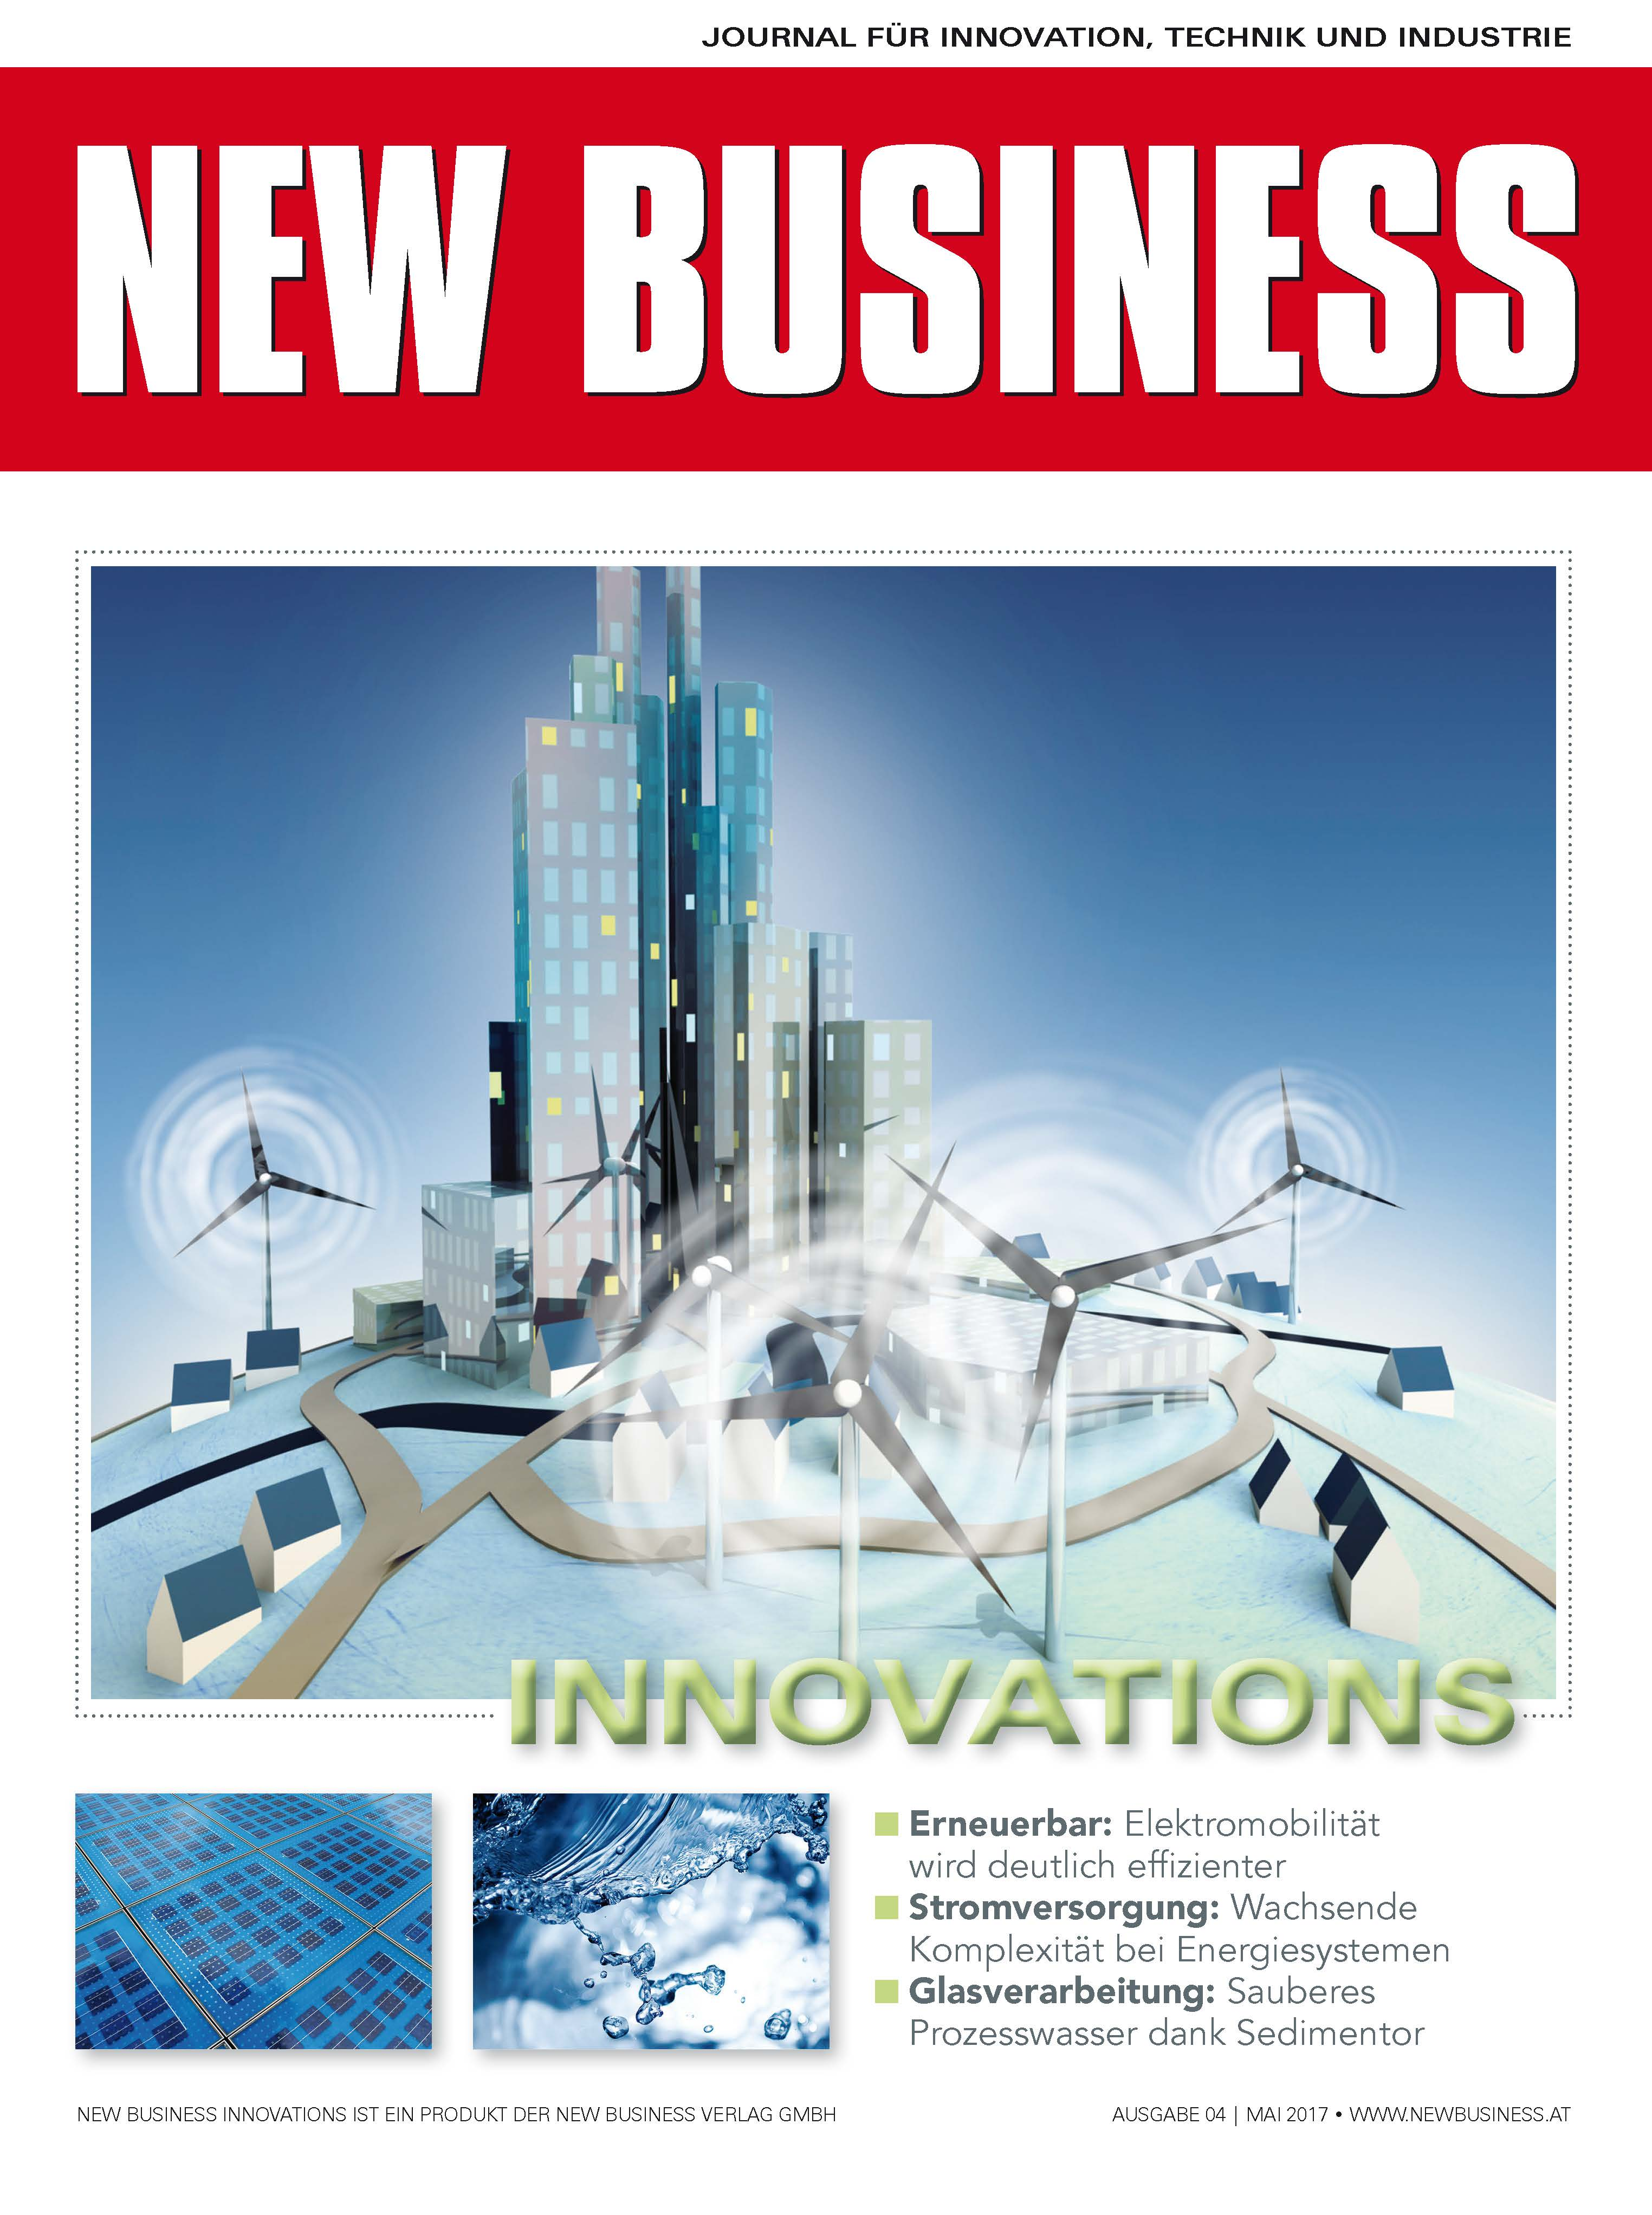 Cover: NEW BUSINESS Innovations - NR. 04, MAI 2017